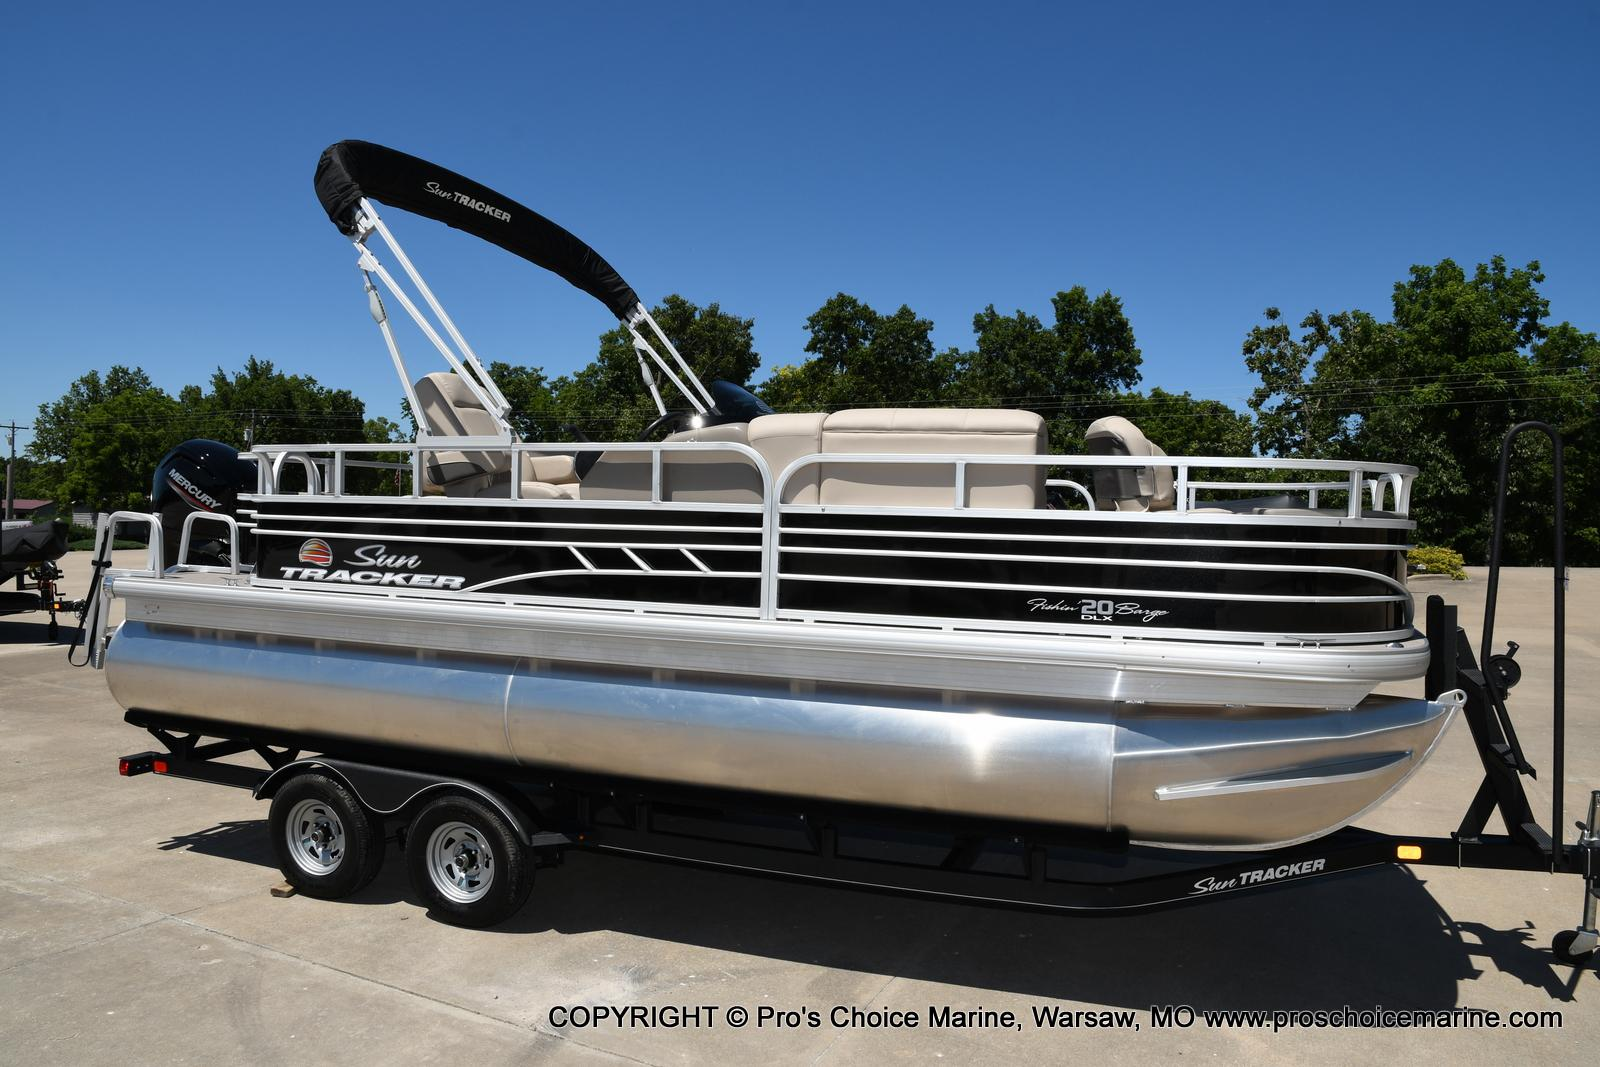 2021 Sun Tracker boat for sale, model of the boat is Fishin' Barge 20 DLX & Image # 18 of 50